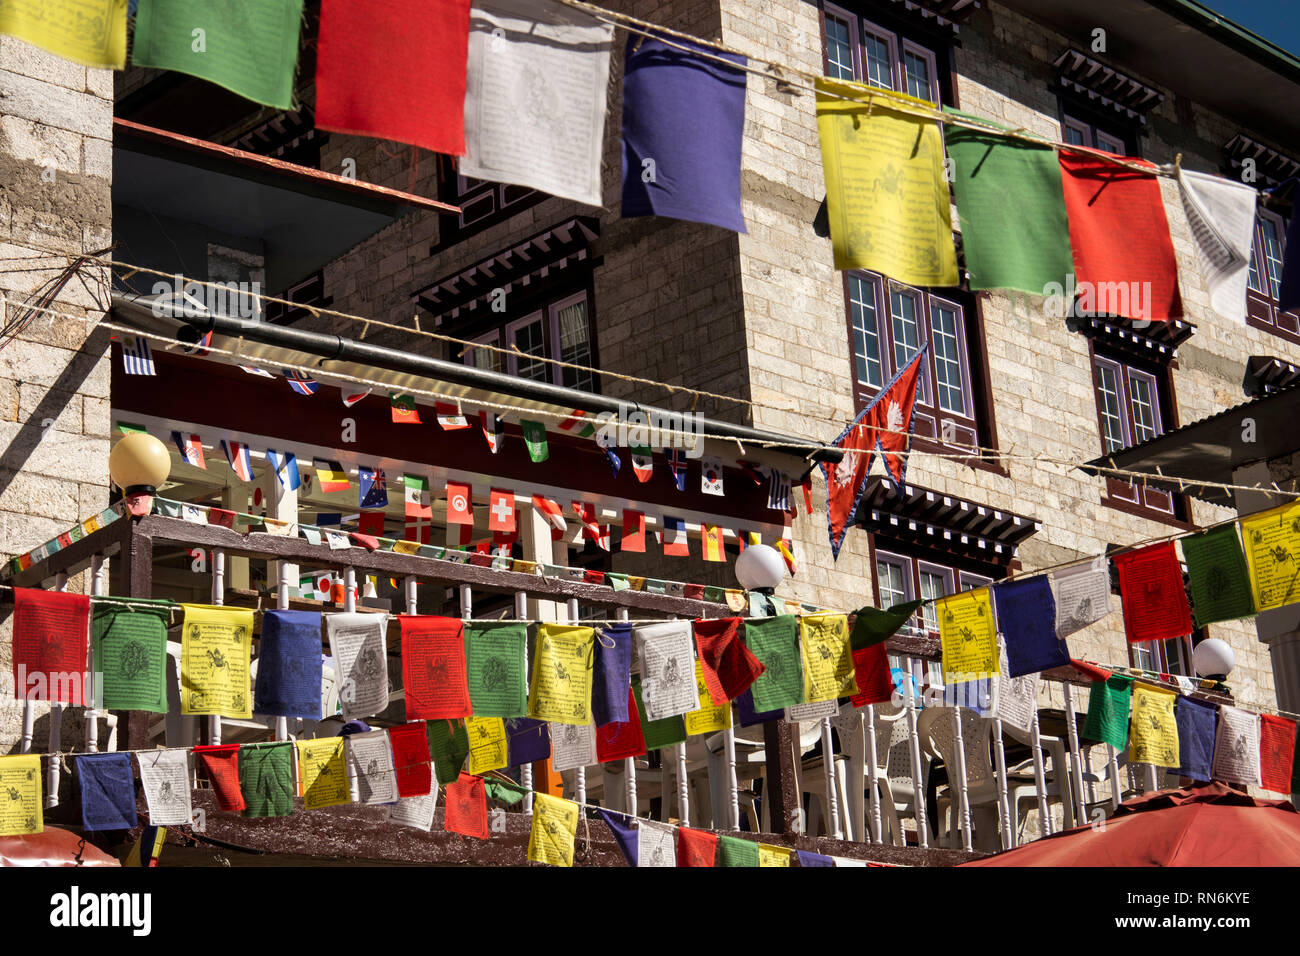 Nepal, Namche Bazaar, religion, colourful Buddhist prayer flags above main street through the town - Stock Image